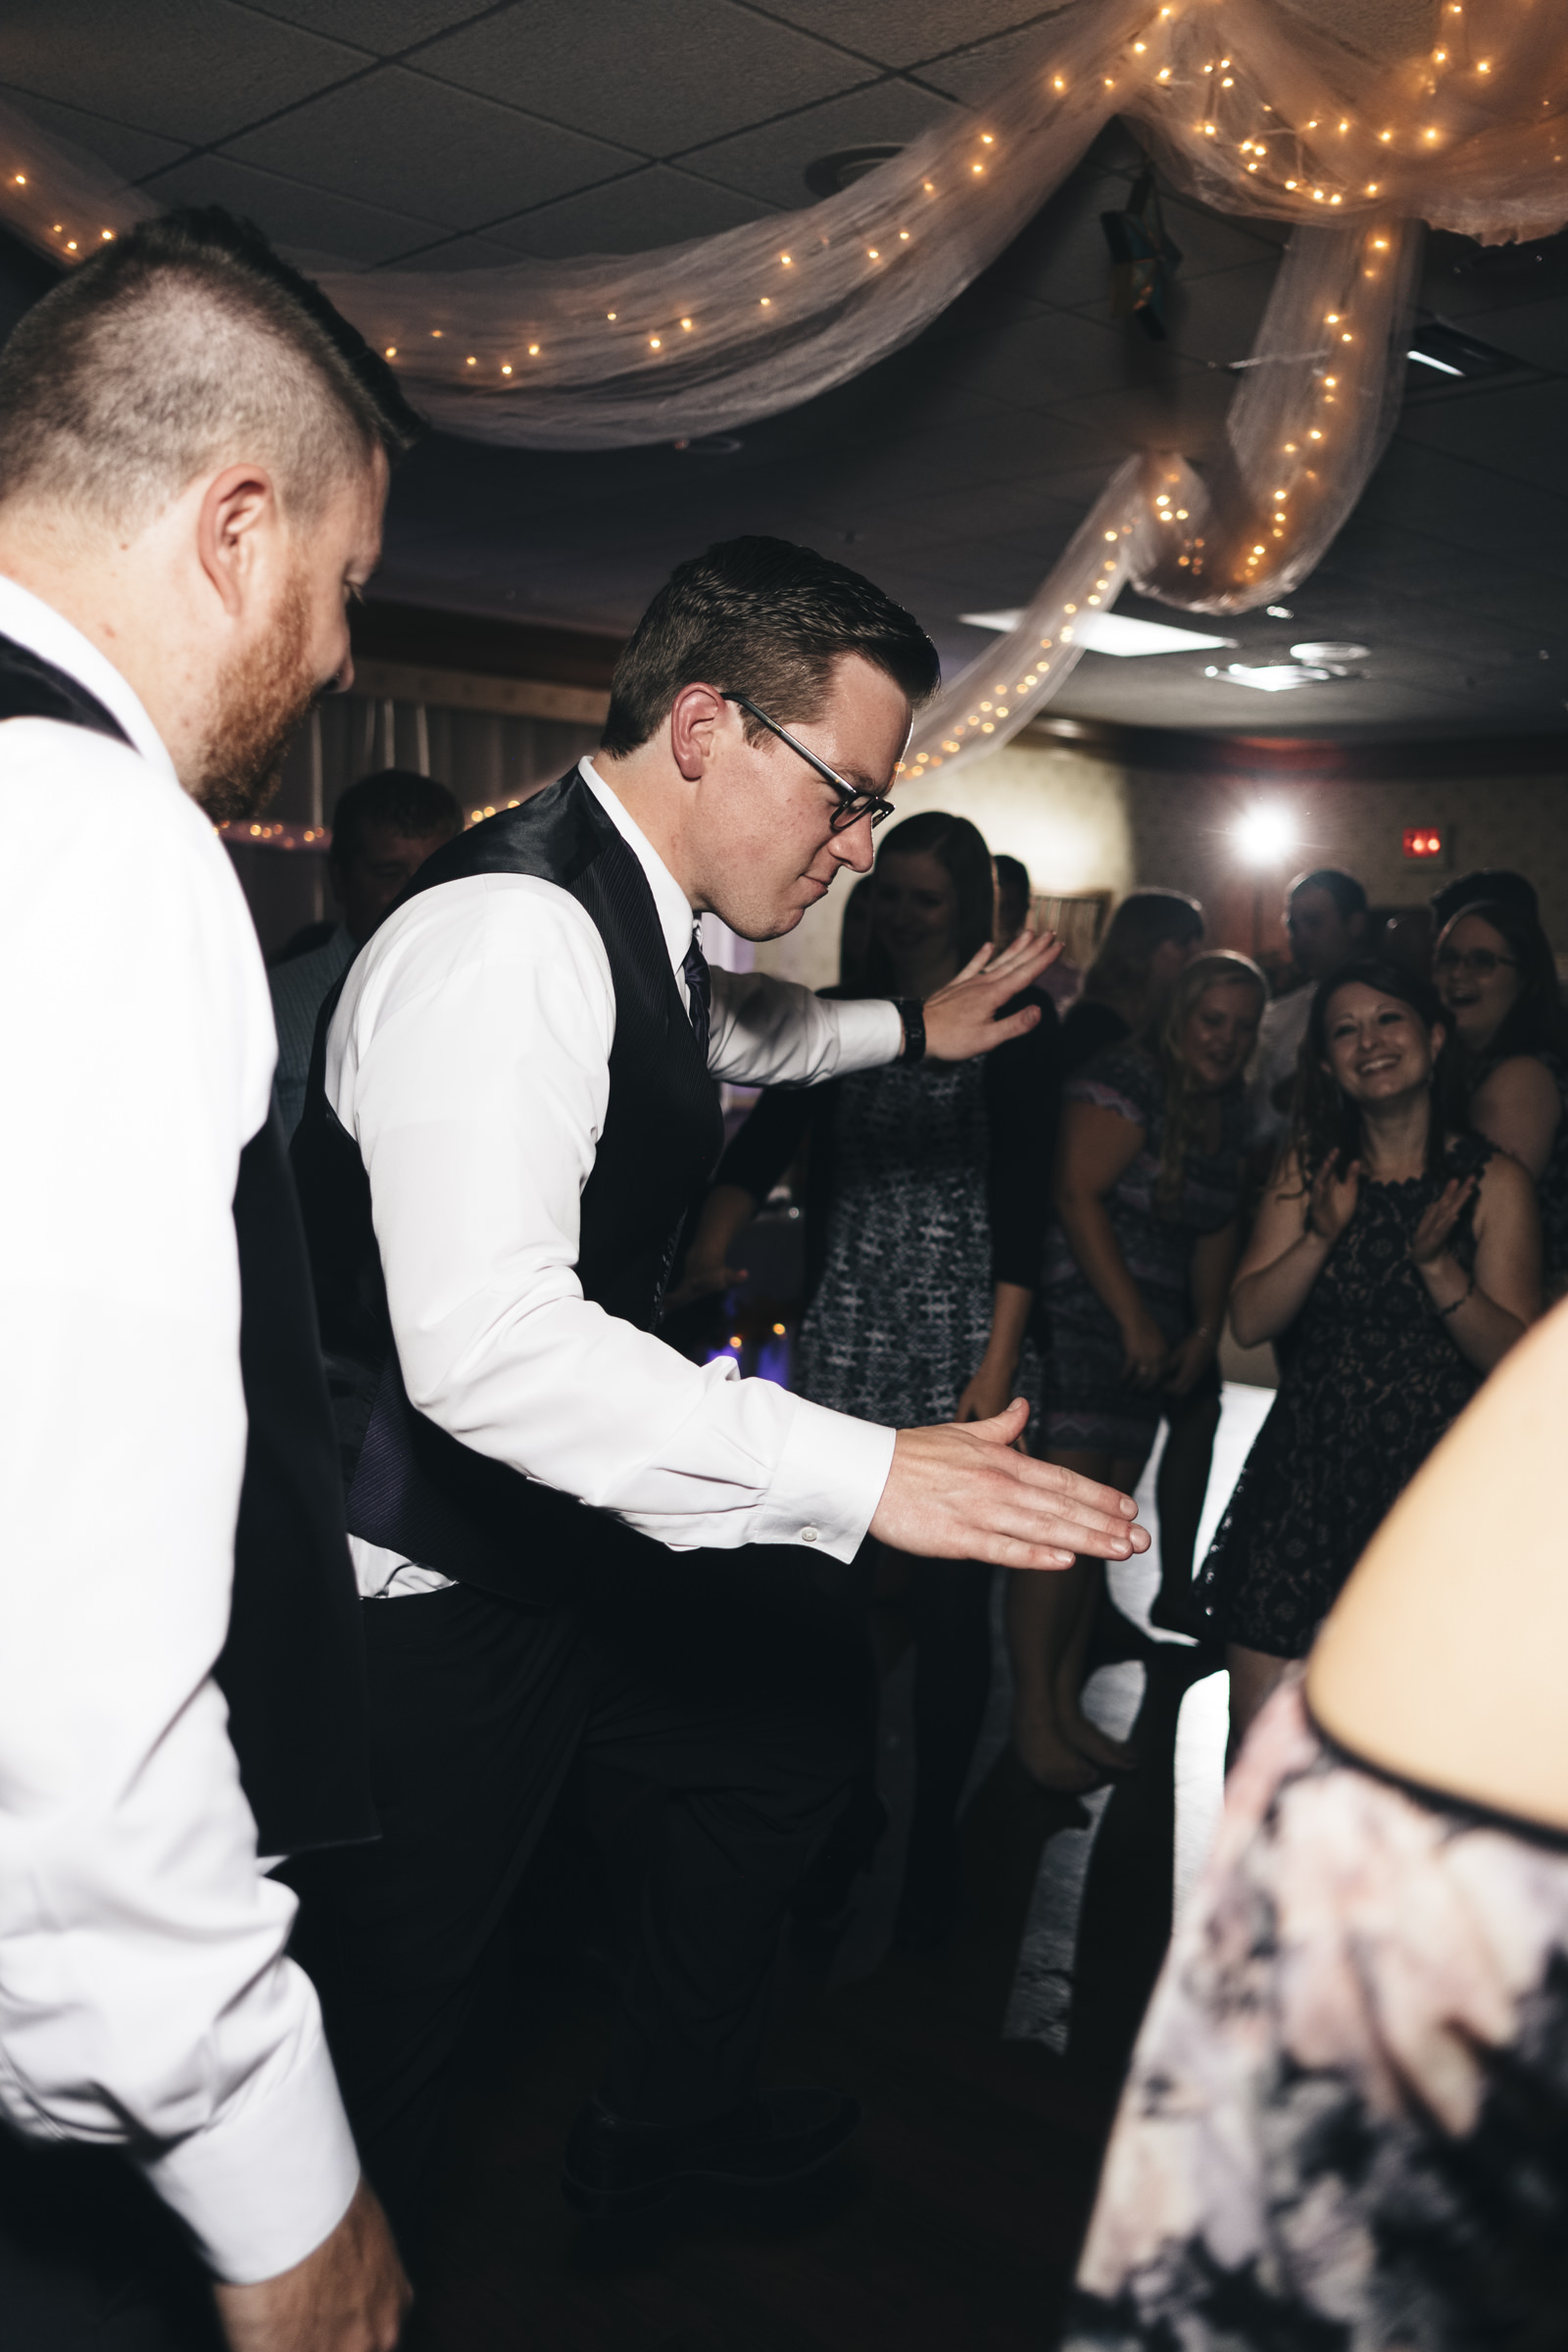 Groom dances during the wedding reception at Elks Lodge Ohio